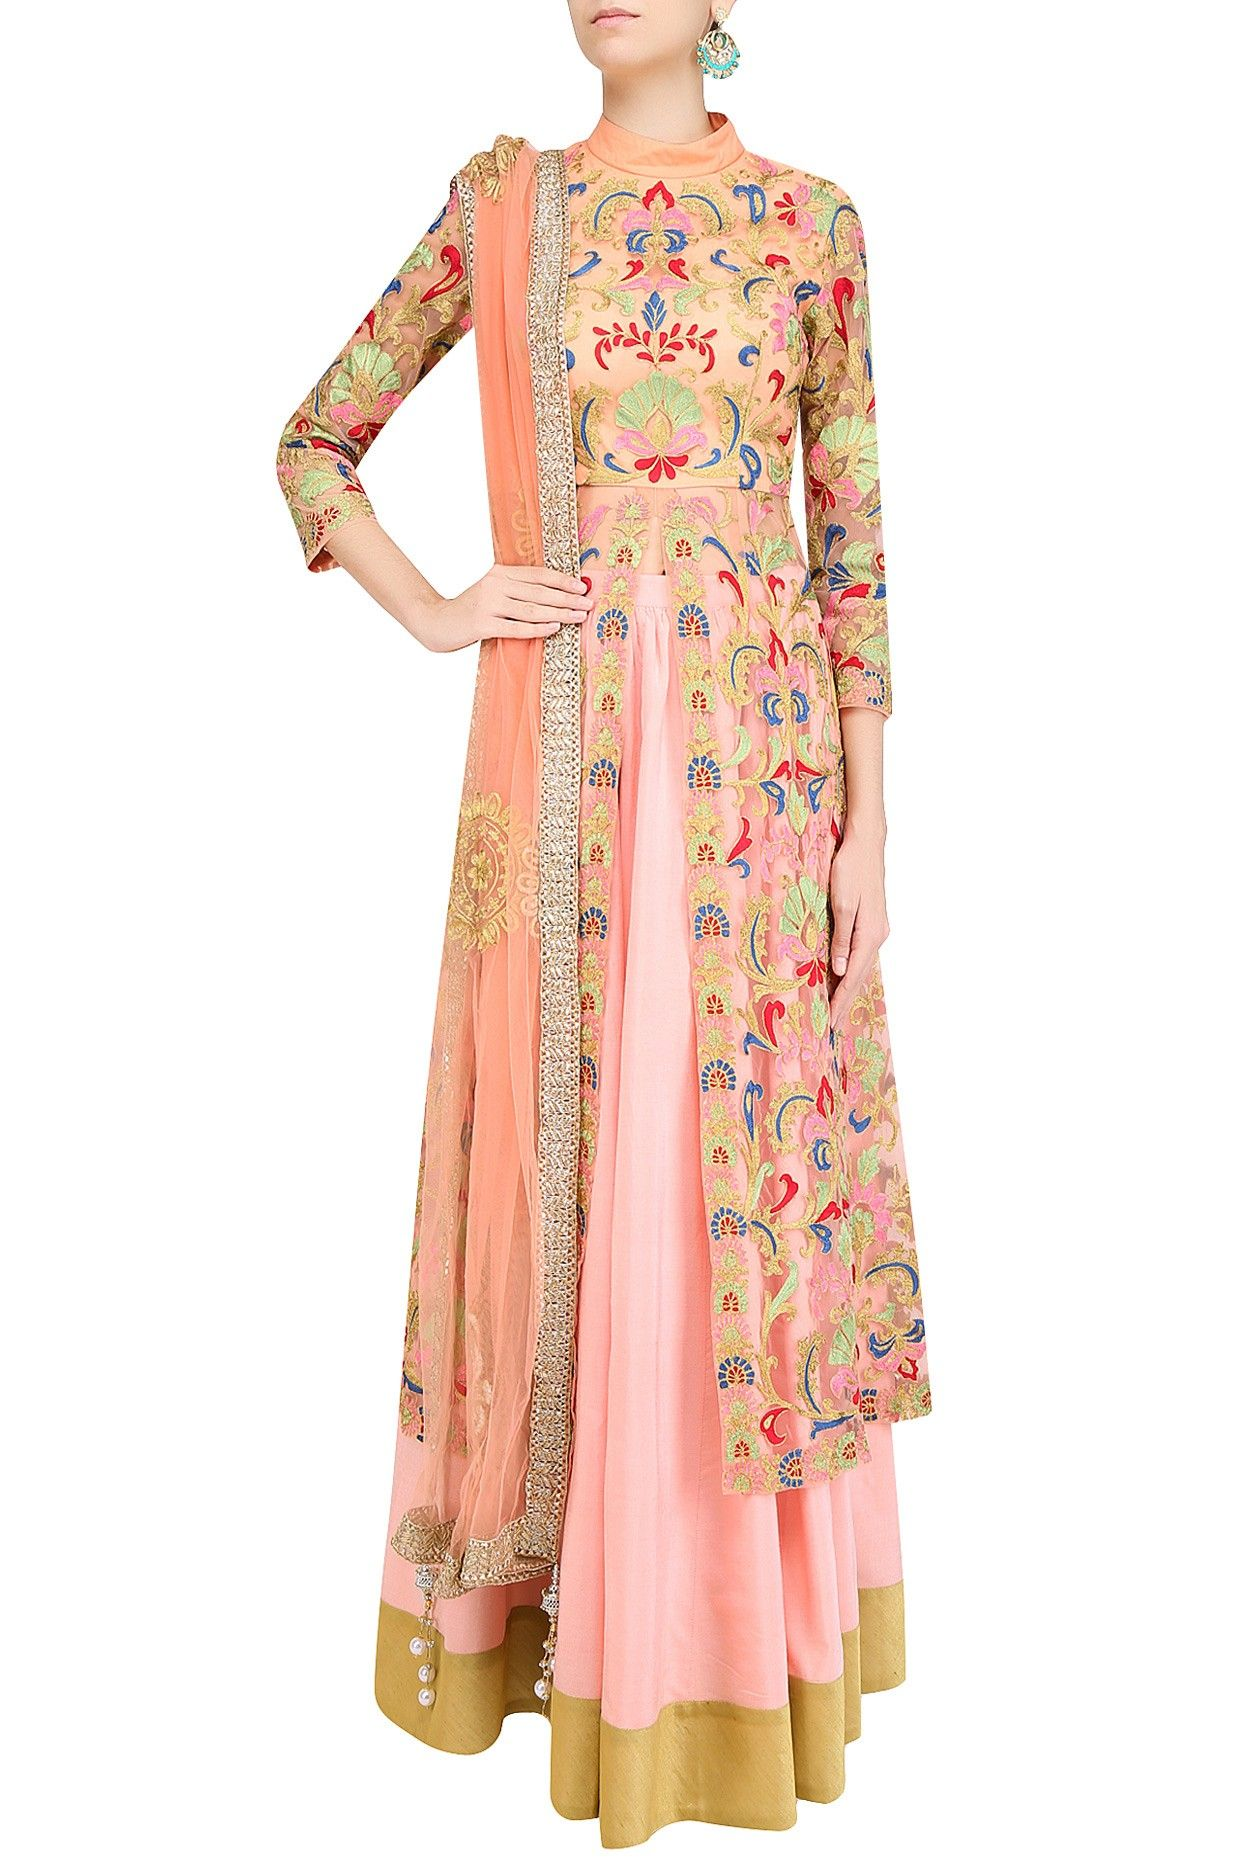 59b6a78806 SONALI GUPTA Pink Floral Embroidered Jacket Style Kurta with Skirt ...